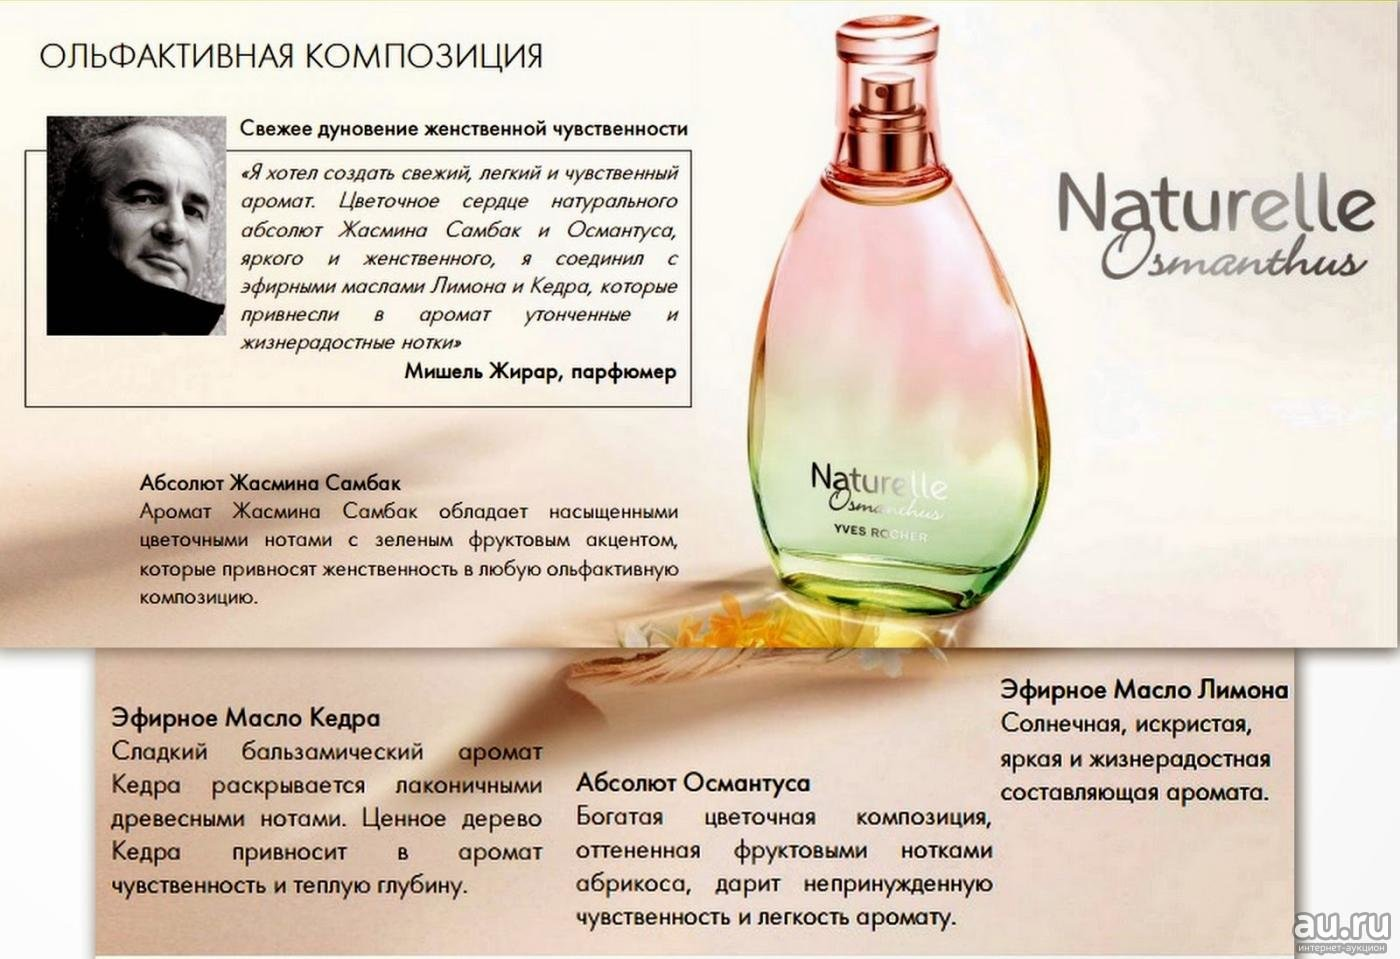 Osmanthus interdite parfum d'empire для женщин